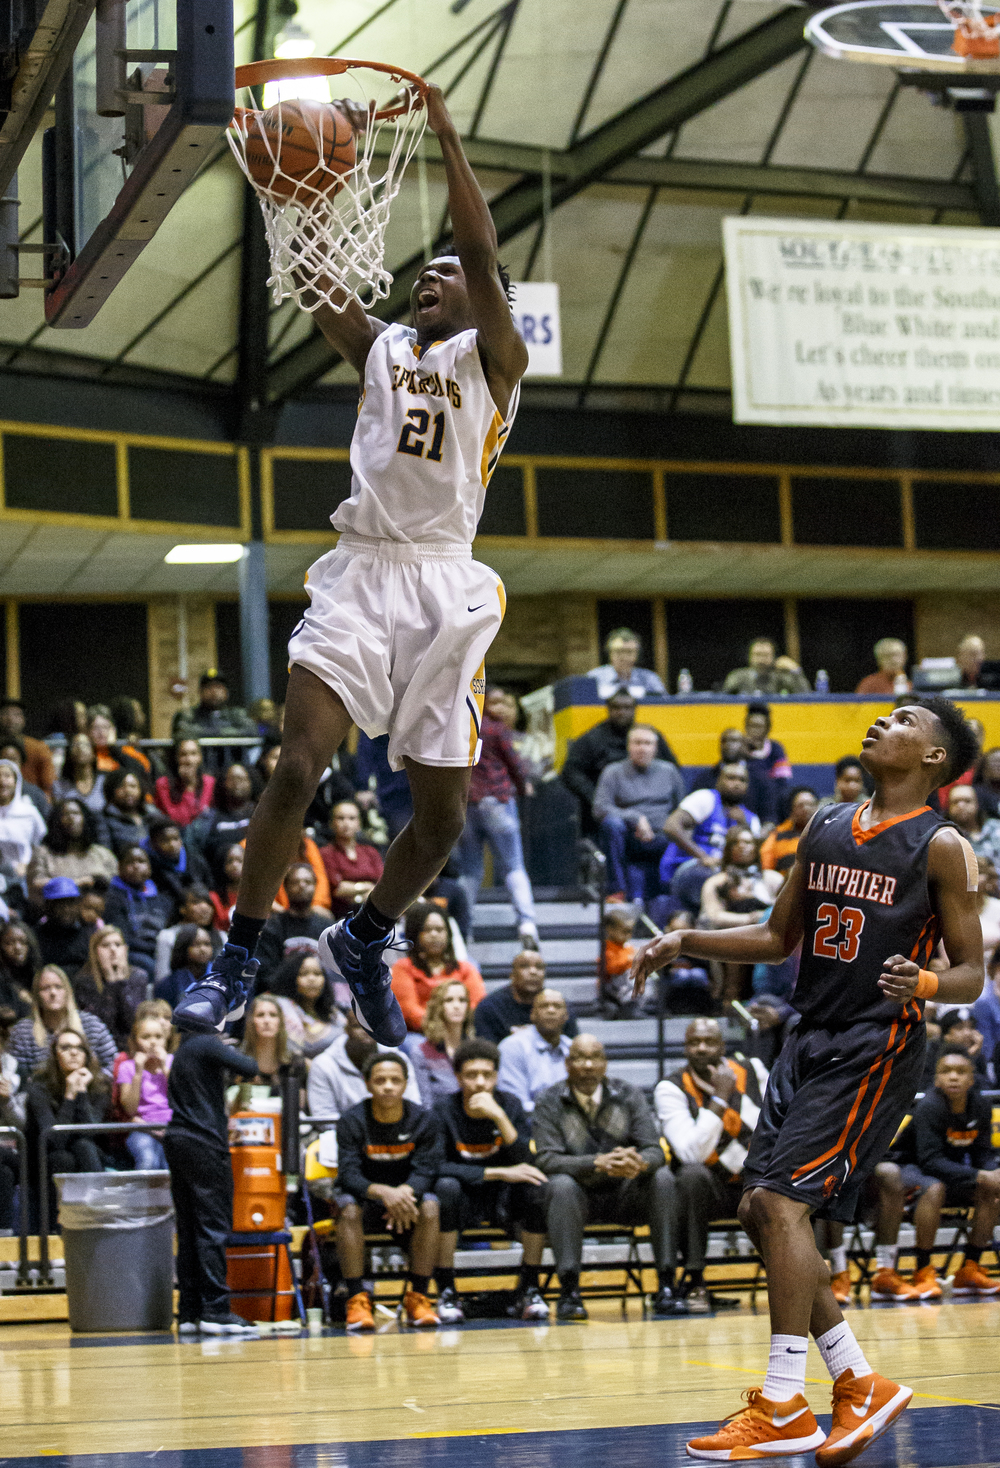 Southeast's Anthony Fairlee (21) goes up for a dunk against Lanpheir's Aundrae Williams (23) in the first half at Herb Scheffler Gymnasium, Friday, Feb. 26, 2016, in Springfield, Ill. Justin L. Fowler/The State Journal-Register